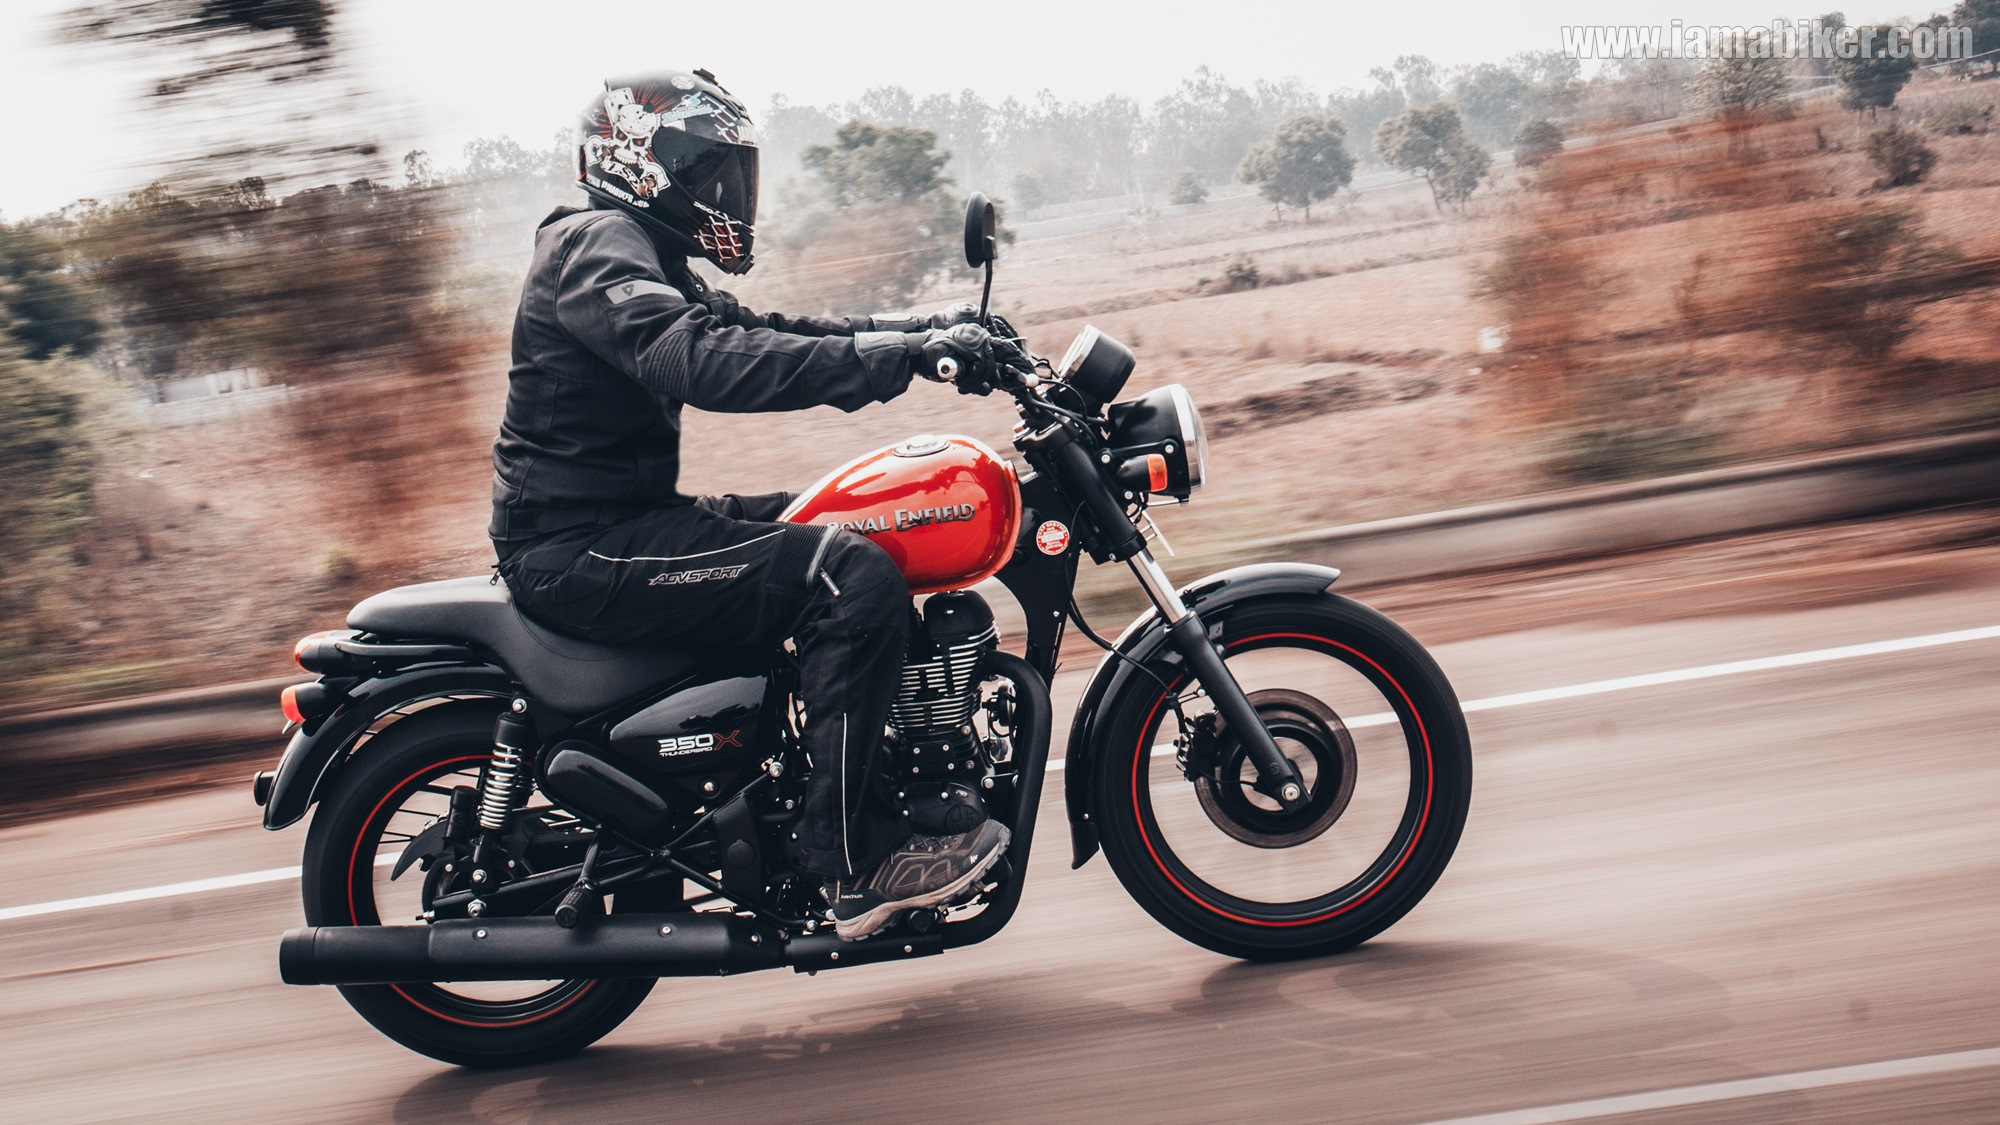 royal enfield thunderbird 350x review iamabiker. Black Bedroom Furniture Sets. Home Design Ideas